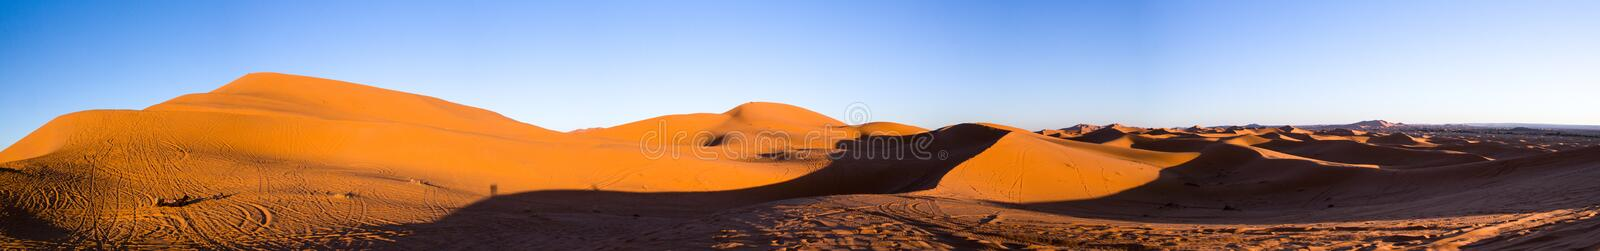 Sunset at the sand dunes royalty free stock images